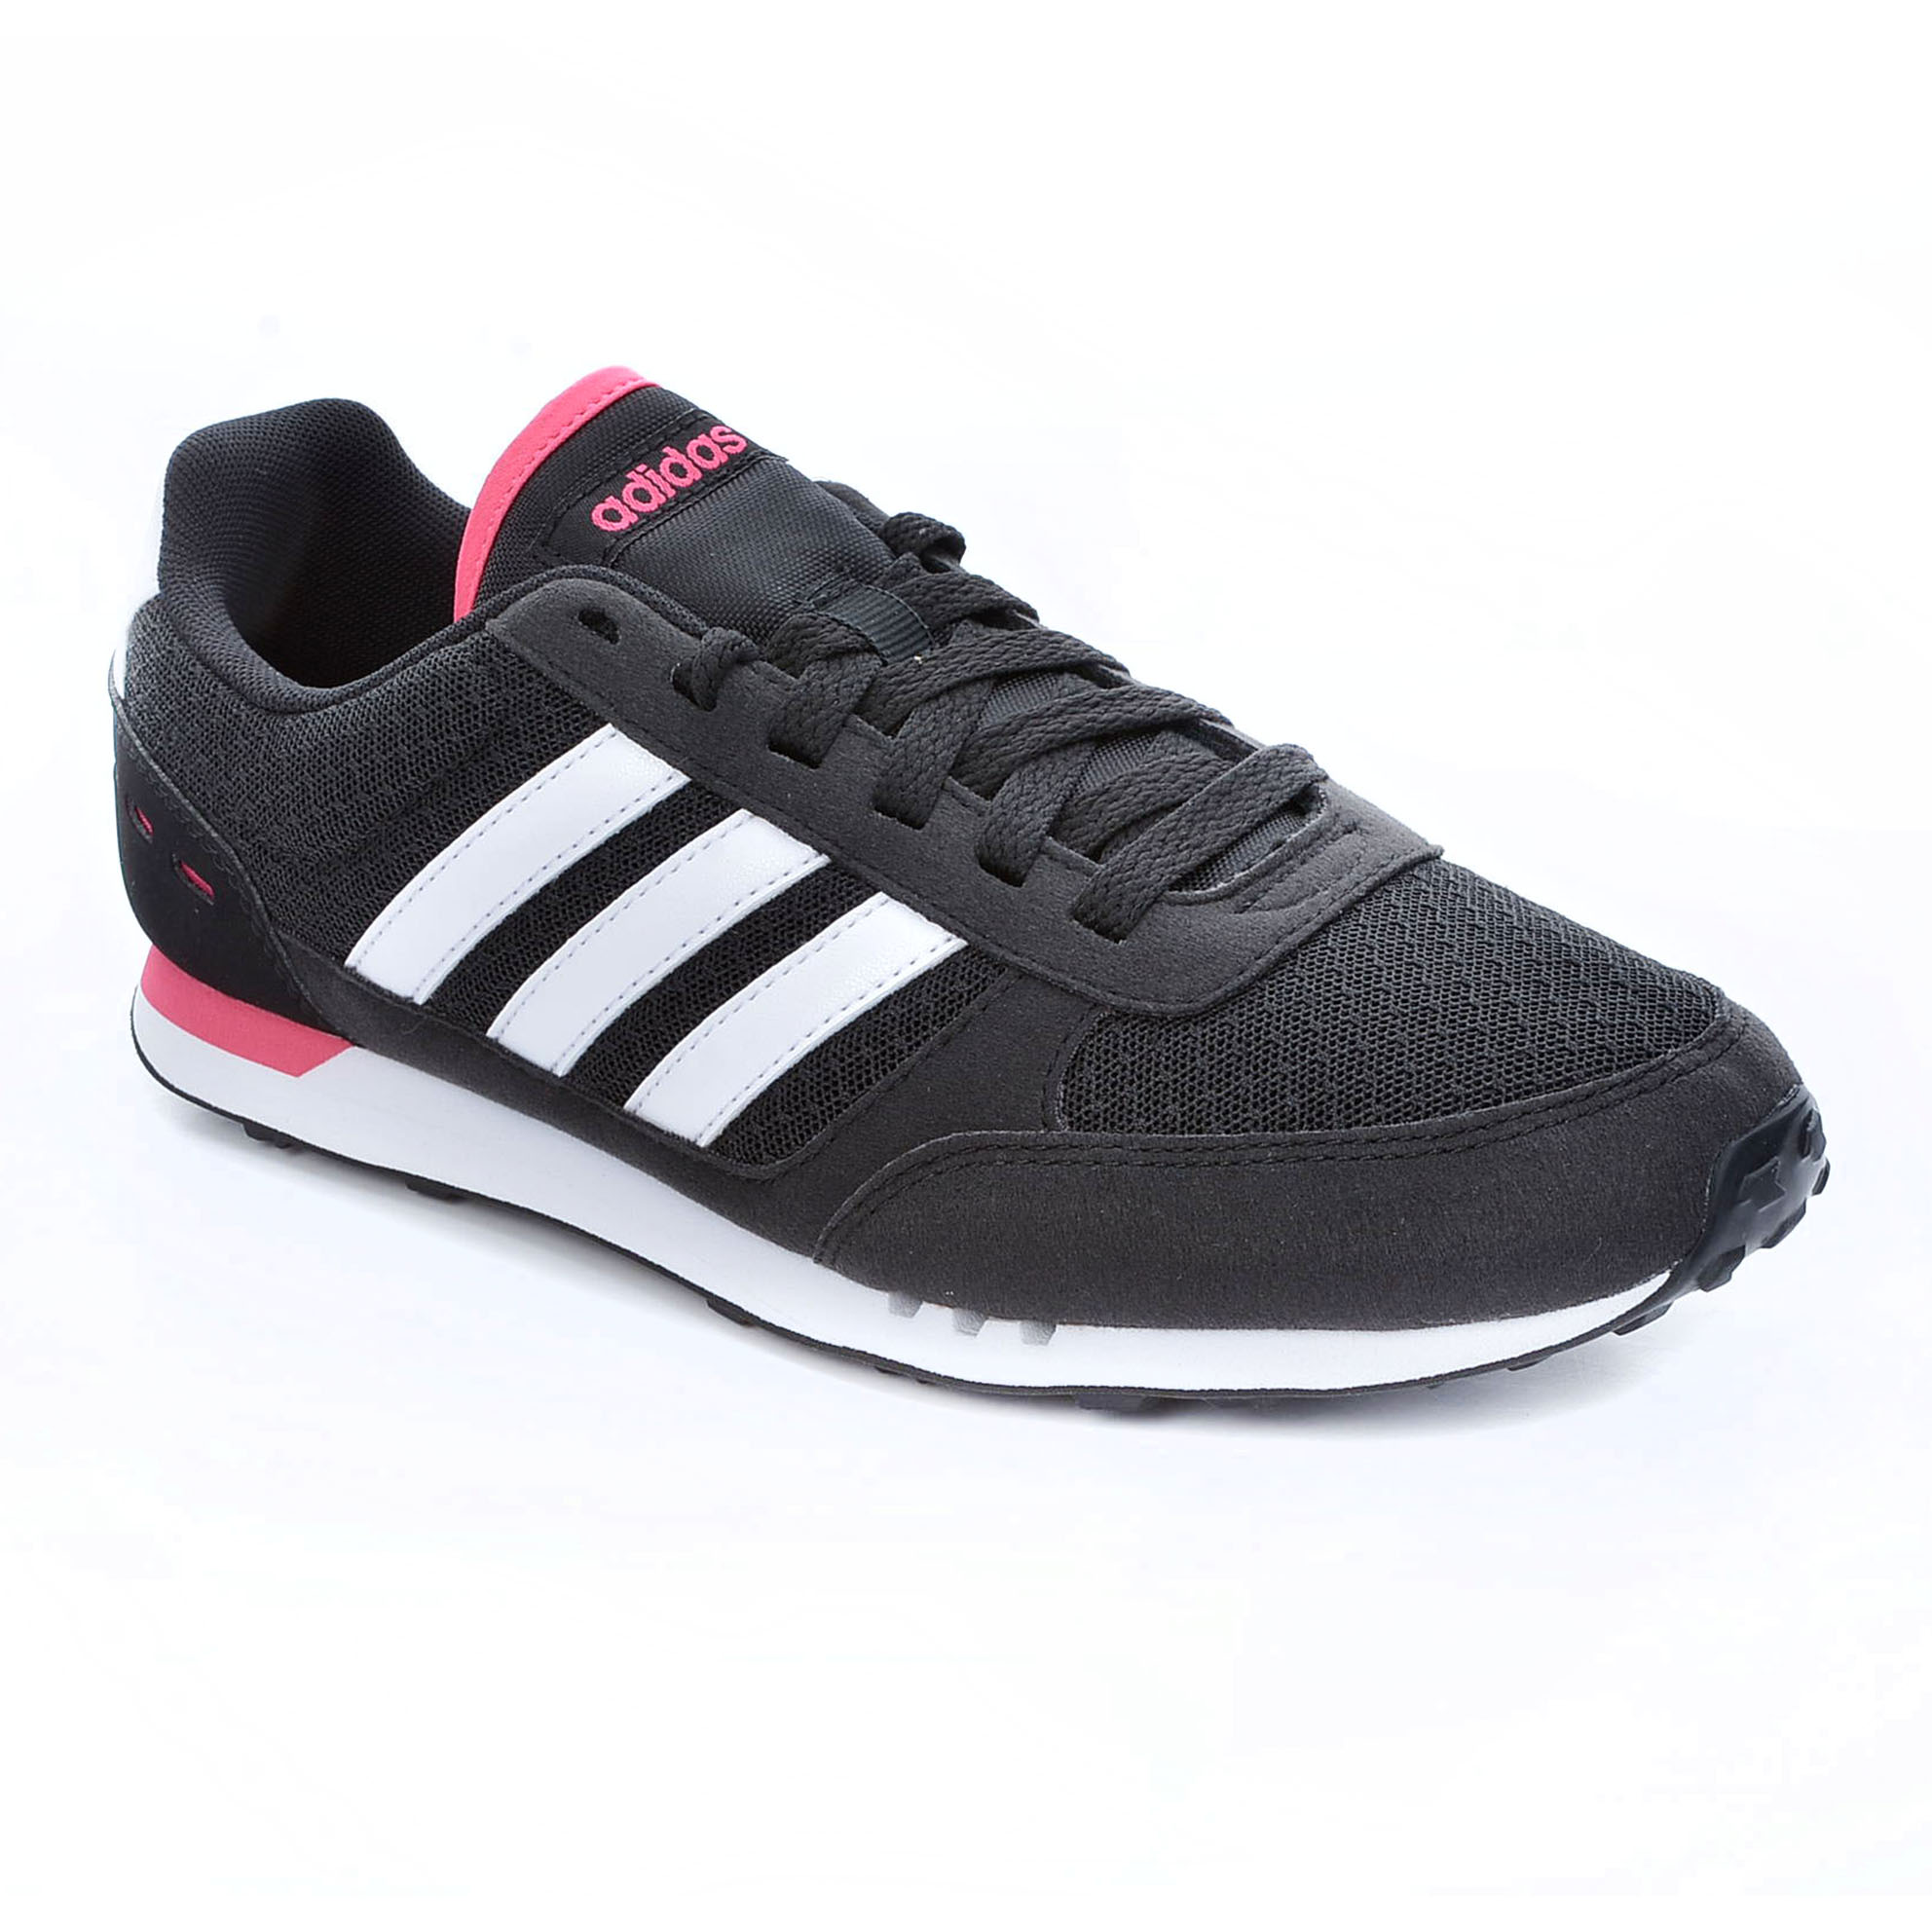 Buty ADIDAS CITY RACER (BB9808) 40|6,5 6900530379